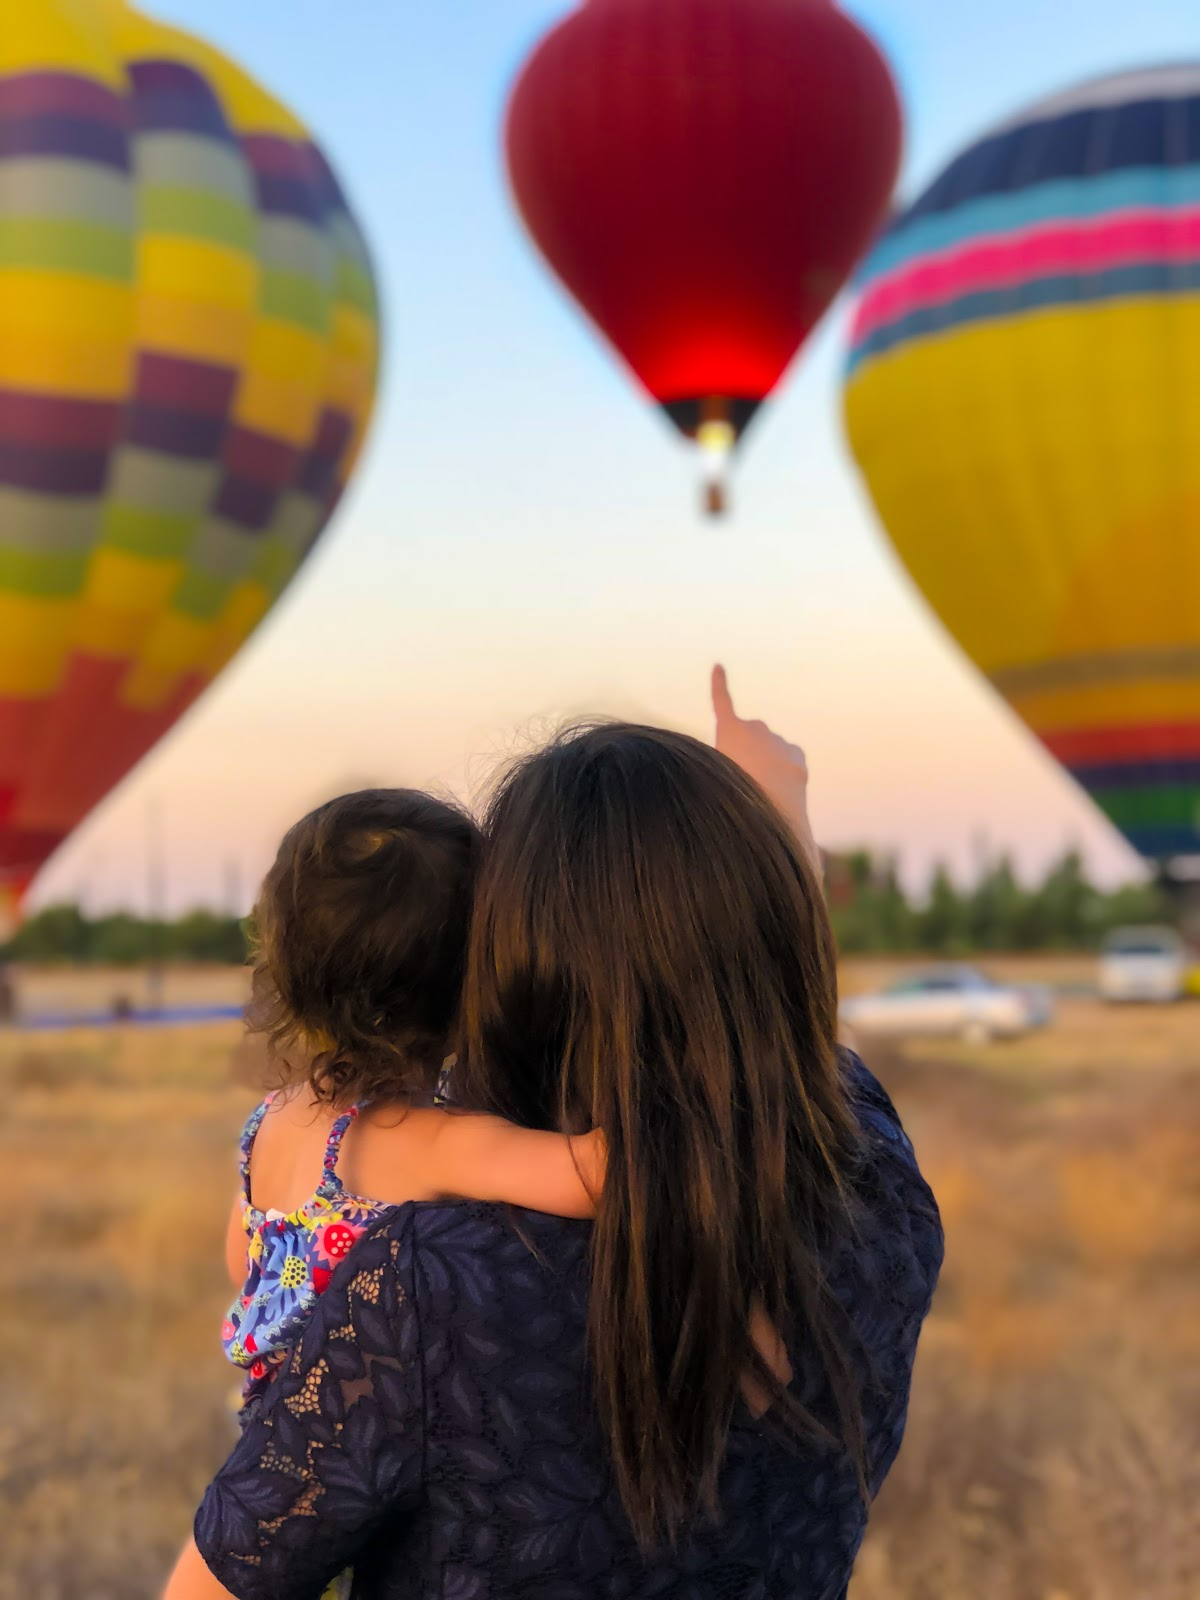 Mother and her little child looking up at the sky towards hot air ballons.